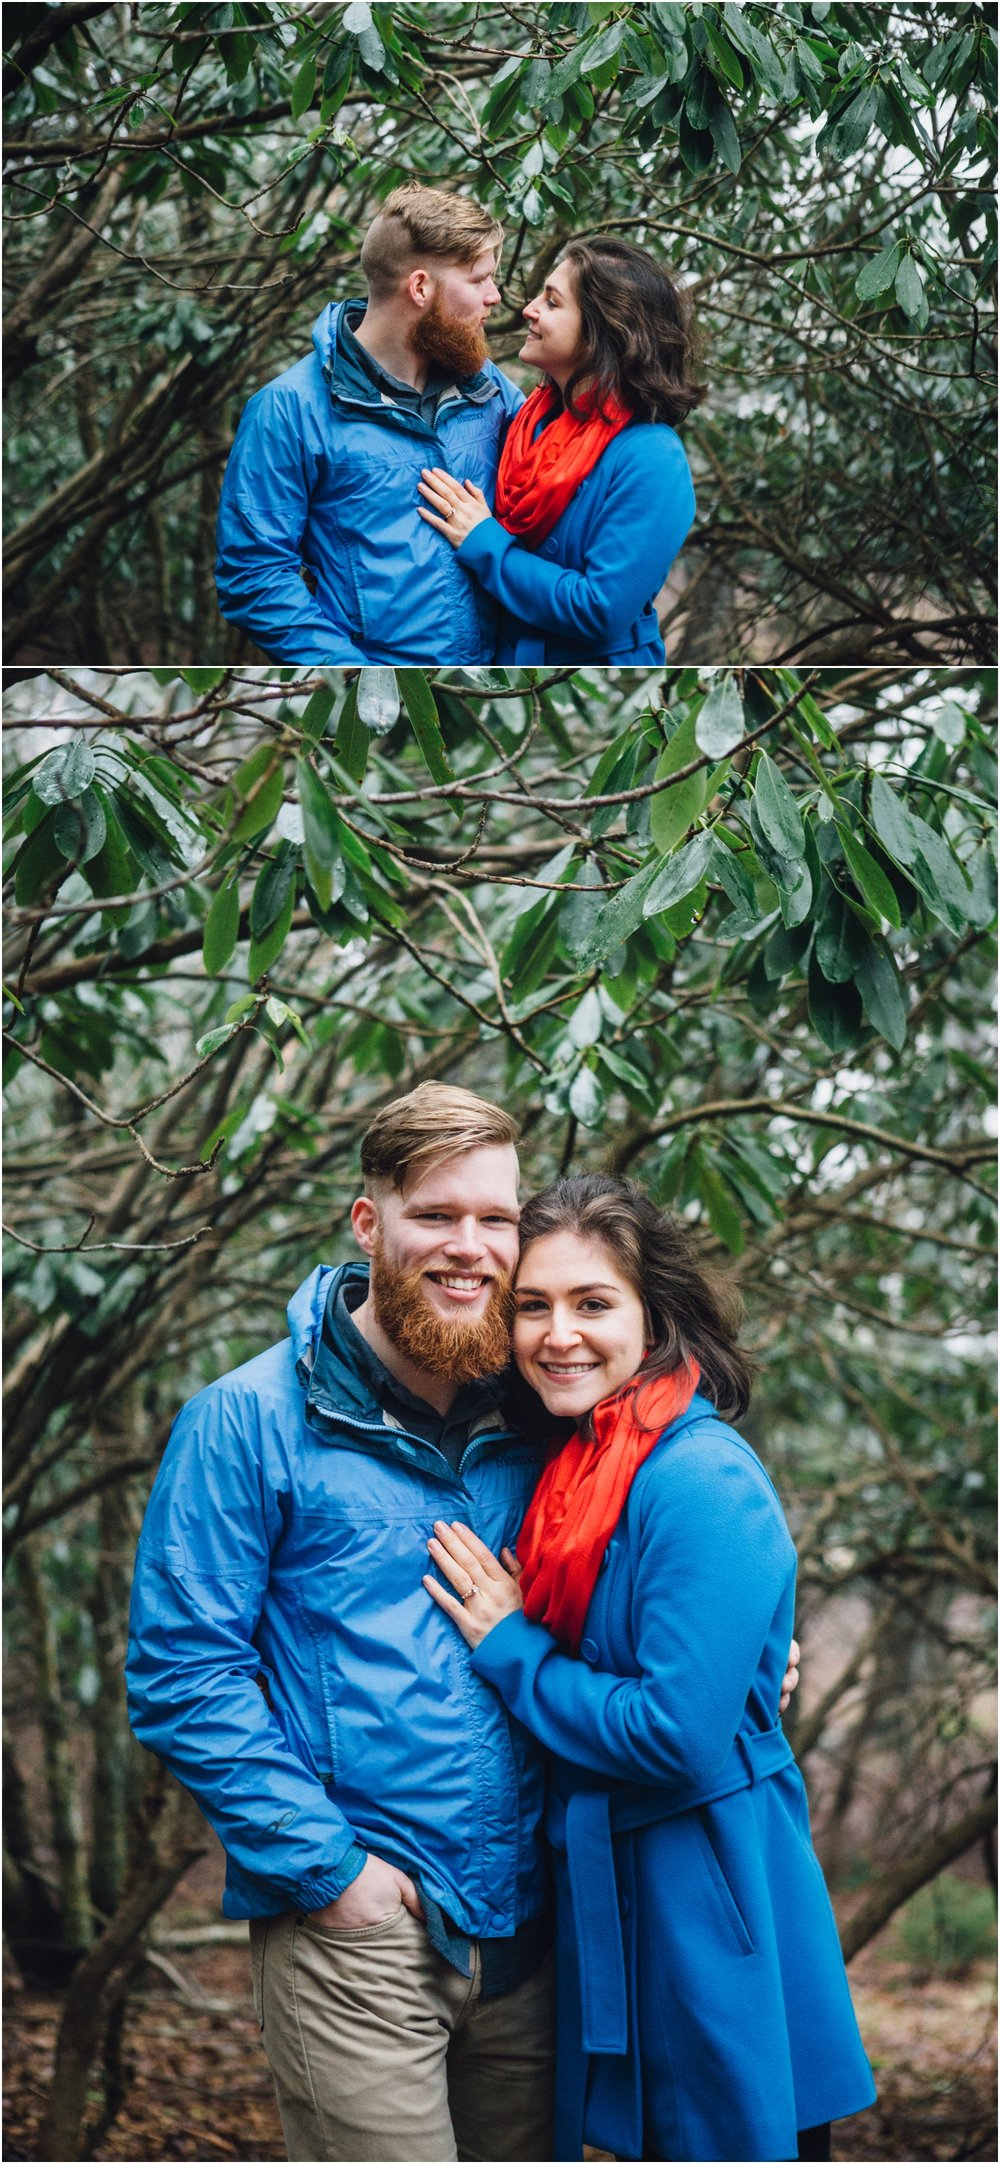 katy-sergent-photography-grayson-highlands-engagement-session-mouth-of-wilson-virginia-damascus-appalachian-trail-tennessee-wedding-elopement_0014.jpg